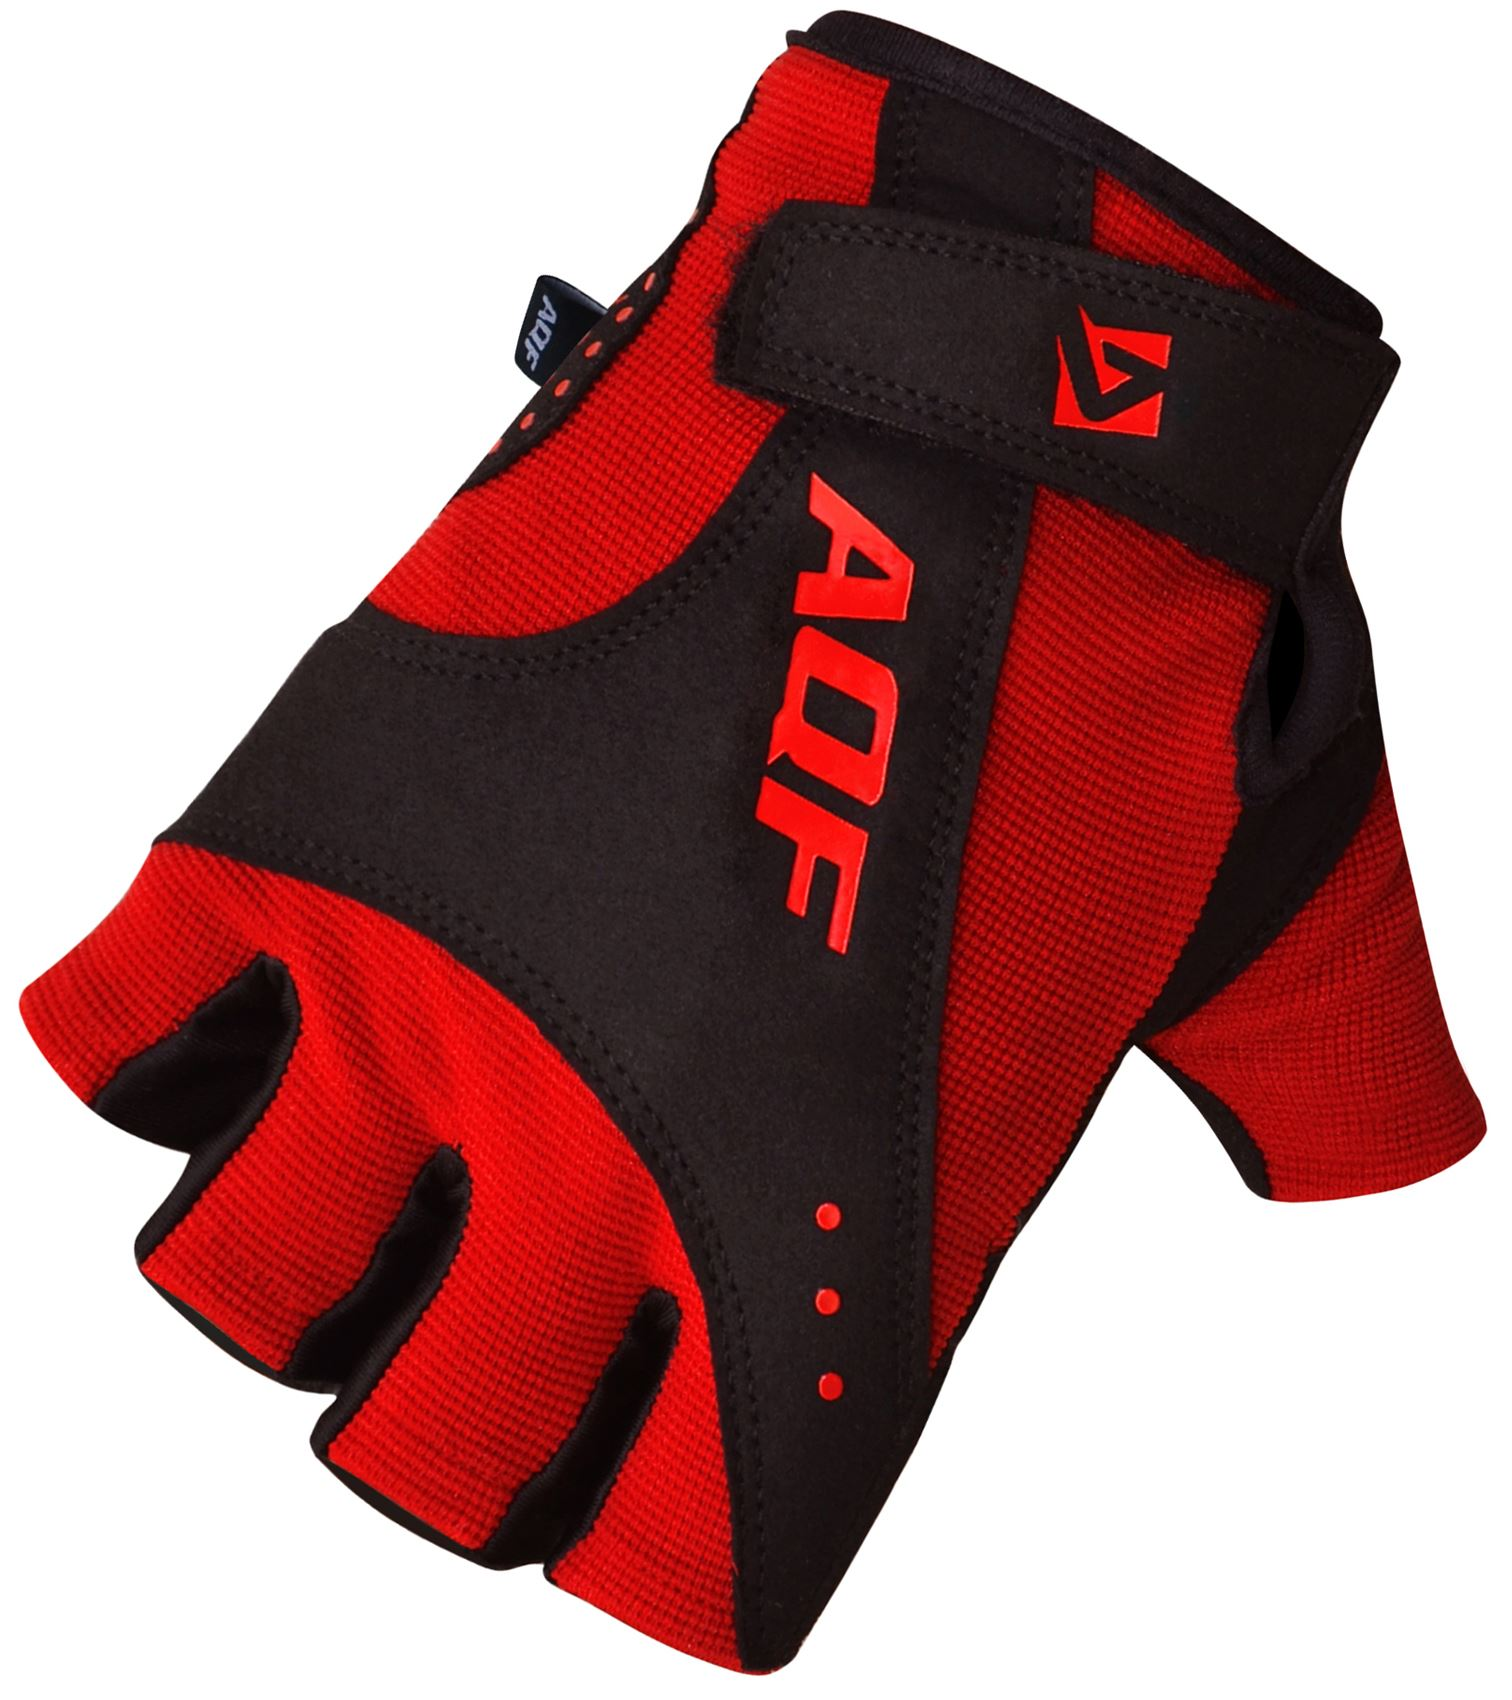 Aqf Weight Lifting Gloves Ultralight Breathable Gym Gloves